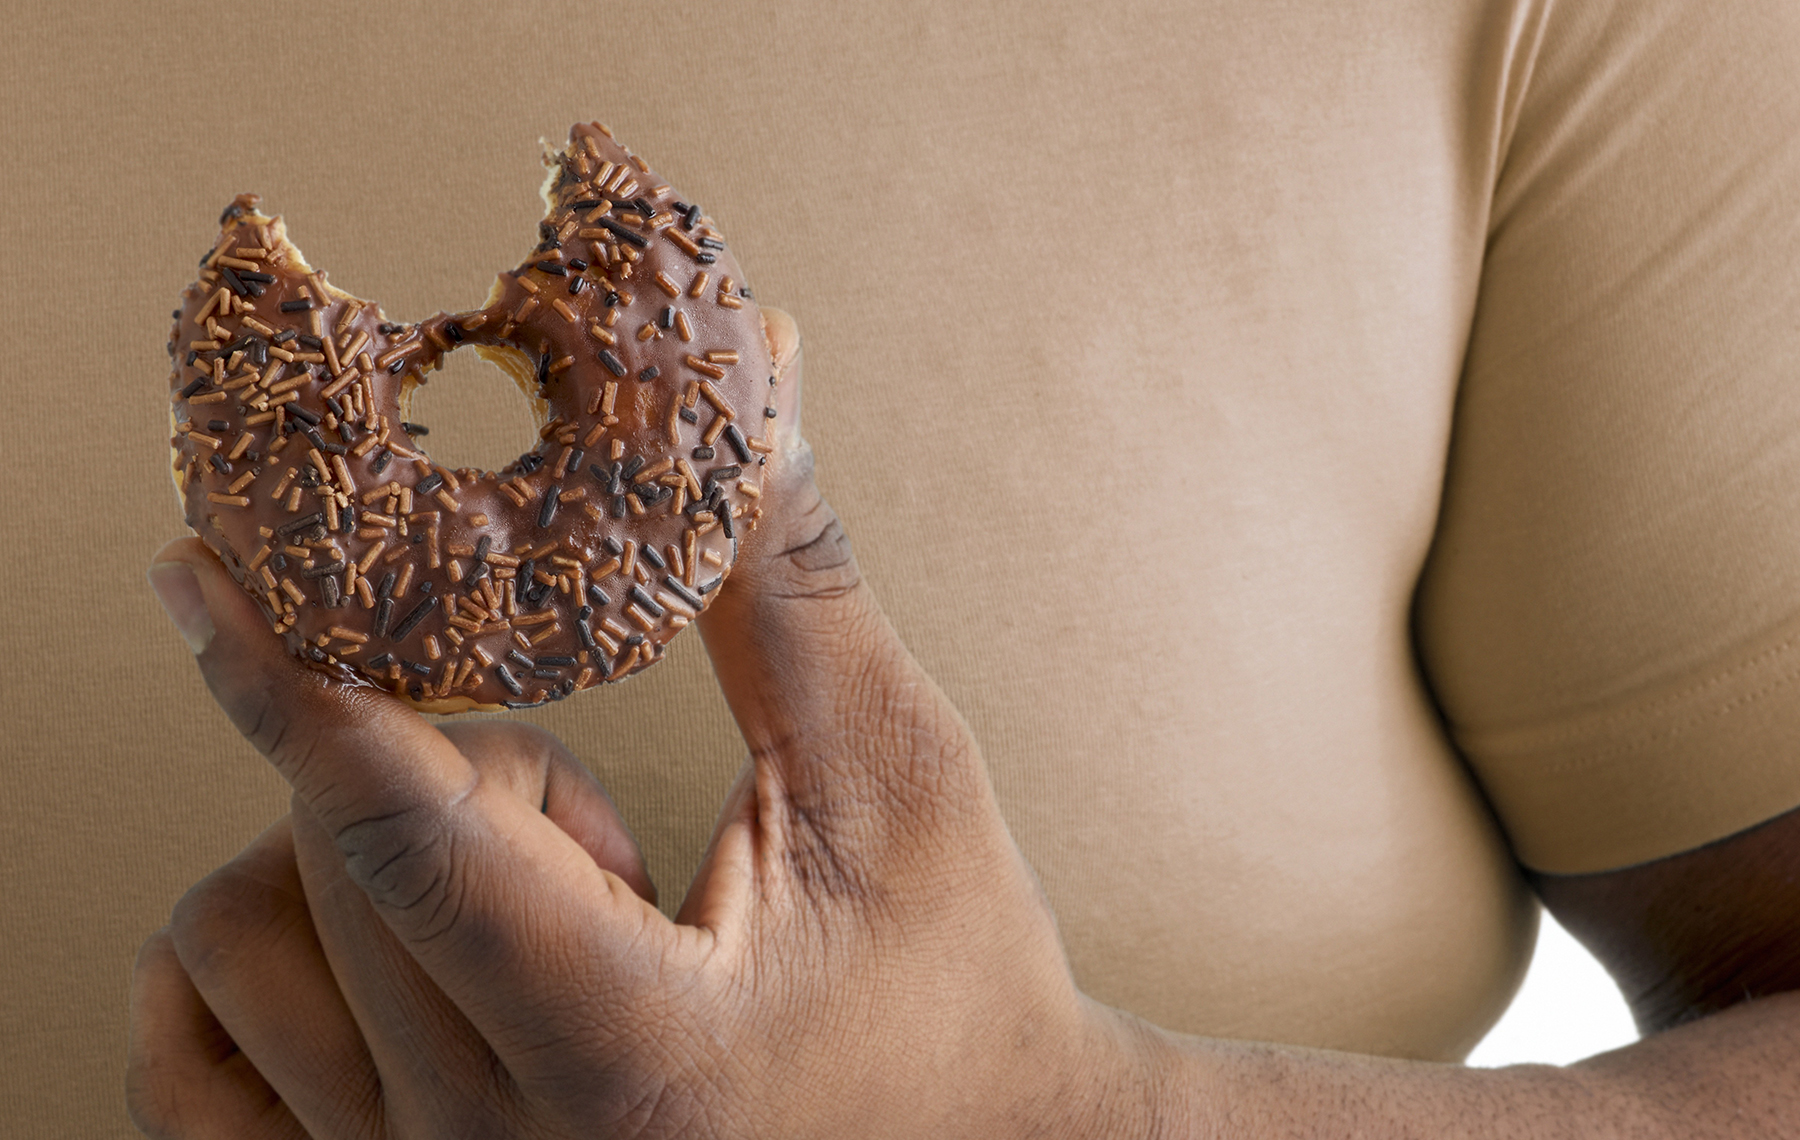 AltaMed person holding a chocolate doughnut